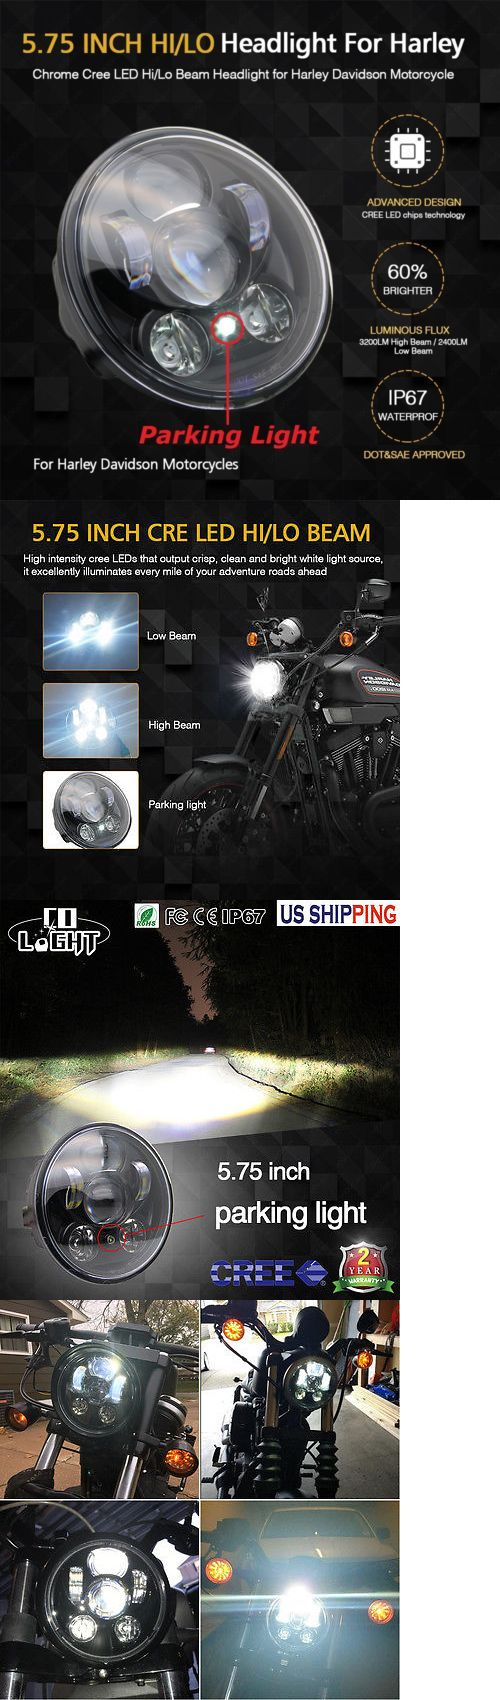 motorcycle parts: Colight 5-3 4 5.75 Led Daymaker Headlight For Harley Sportster Xl 883 1200 Dyna -> BUY IT NOW ONLY: $39.97 on eBay!